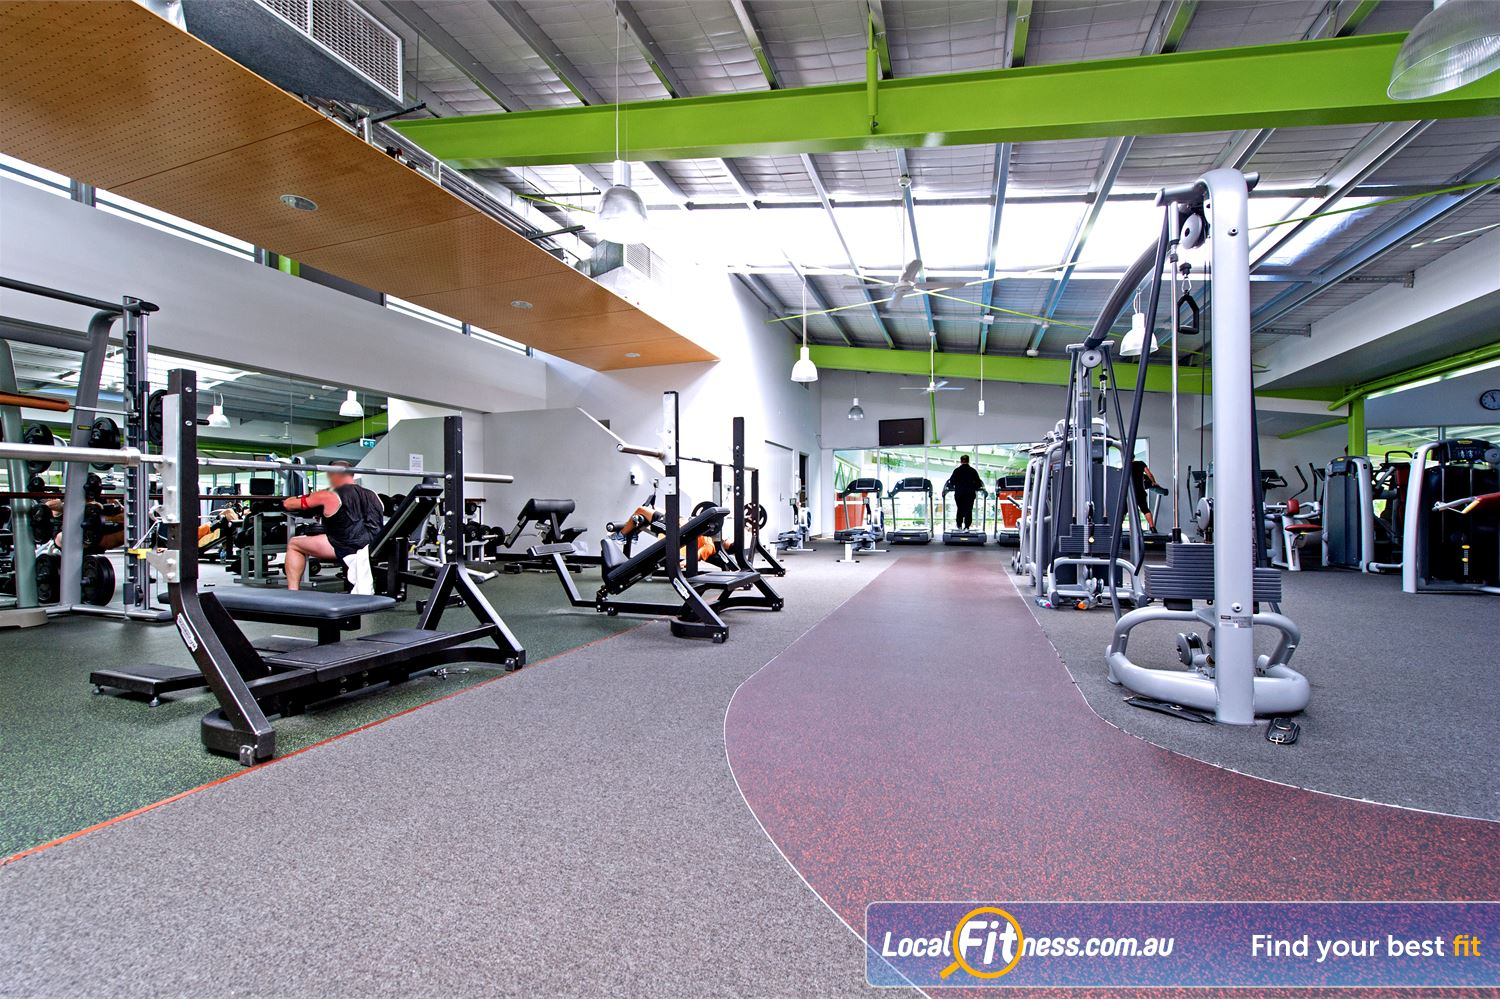 Annette Kellerman Aquatic Centre Near Turrella The Marrickville gym provides a fully equipped free-weights area.